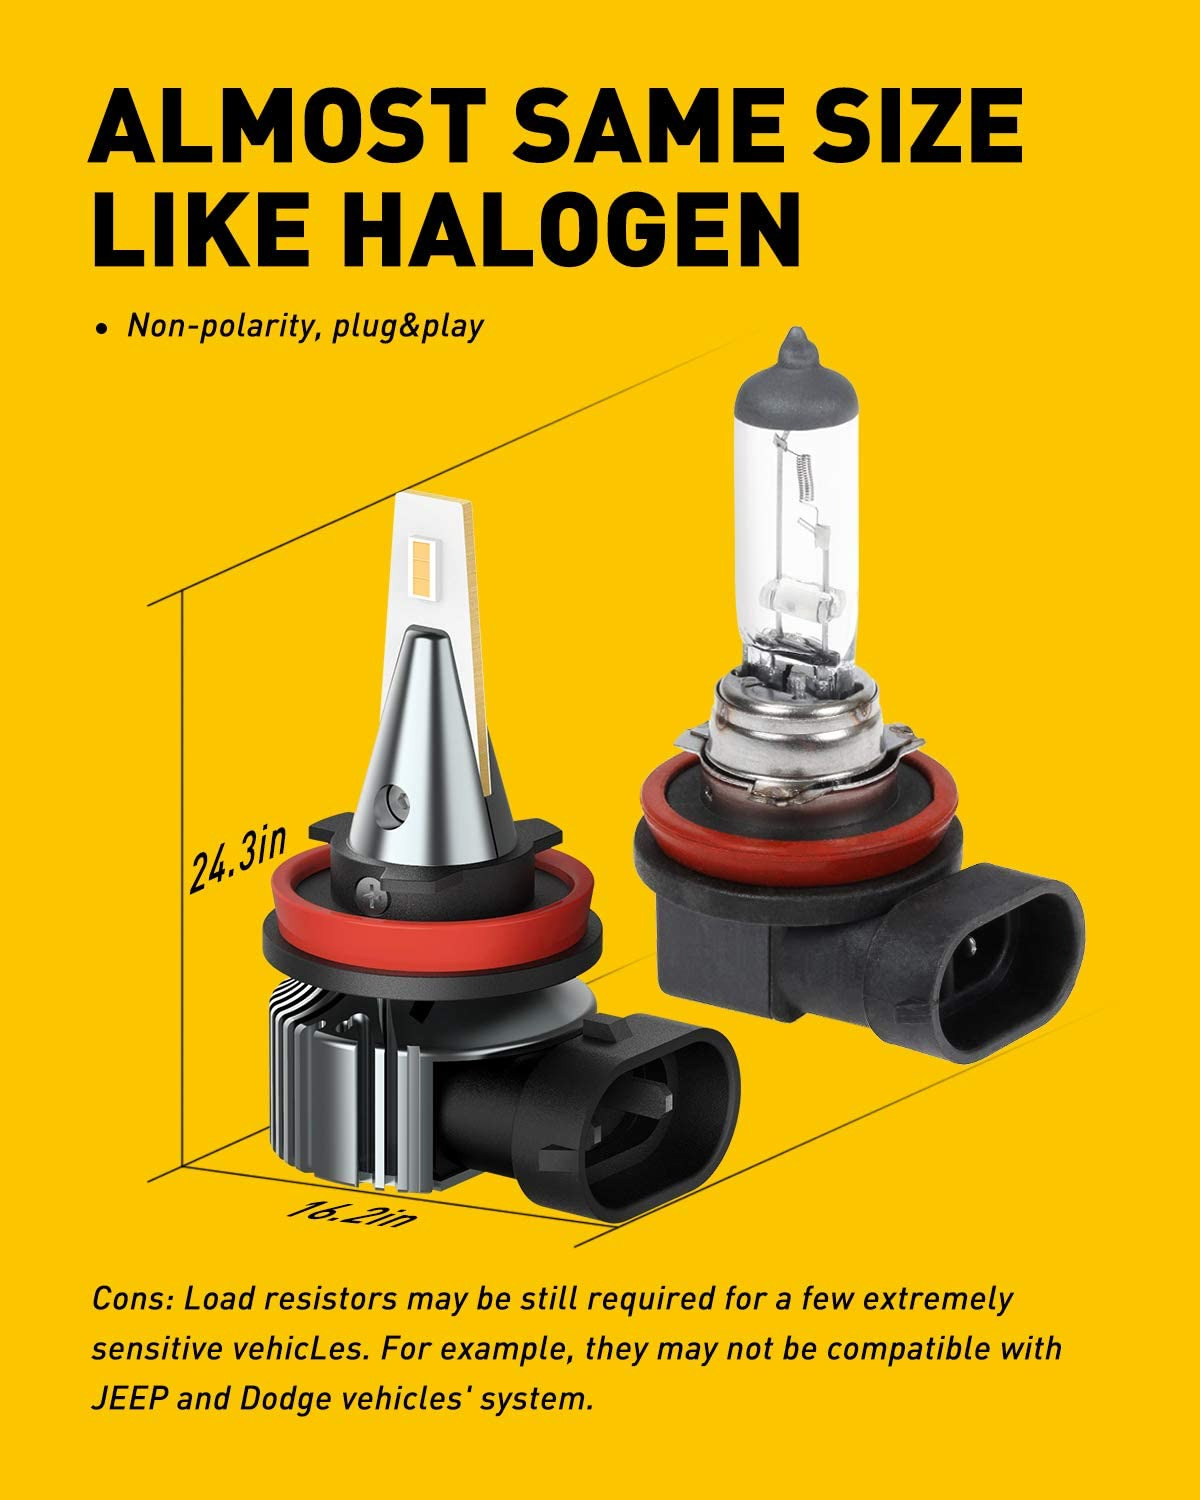 3000K Golden Yellow Light IP65 Waterproof AUXITO H11 H8 H16 LED Fog Light Bulbs 300/% Brighter With CSP LED Chips Non-polarity Pack of 2